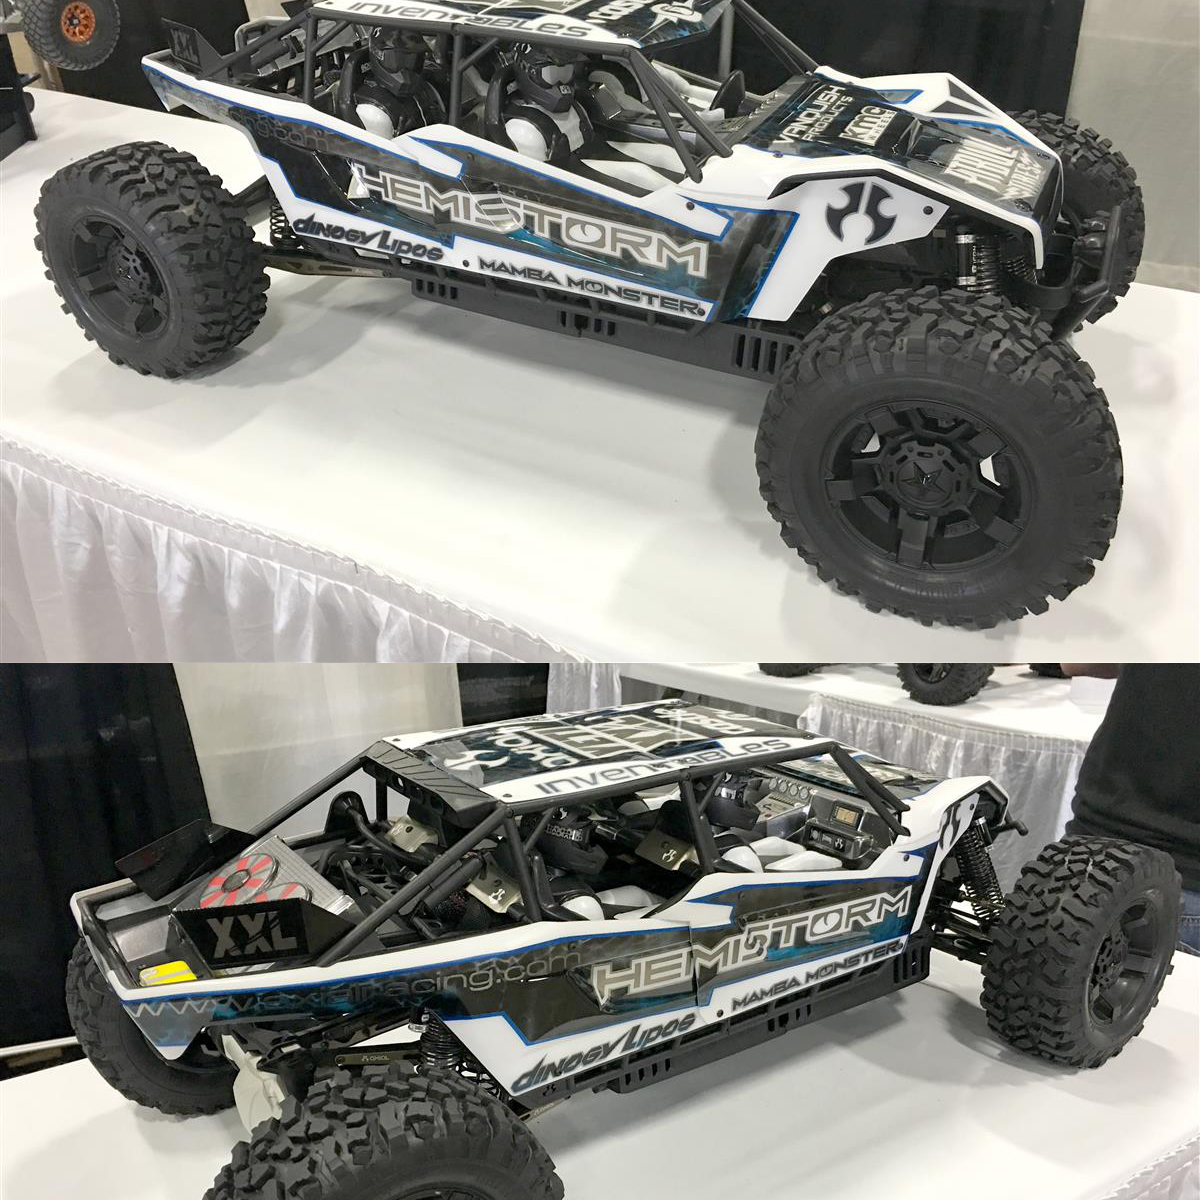 HemiStorm's 4-Seater Axial Yeti XL Blew Us Away at RCX